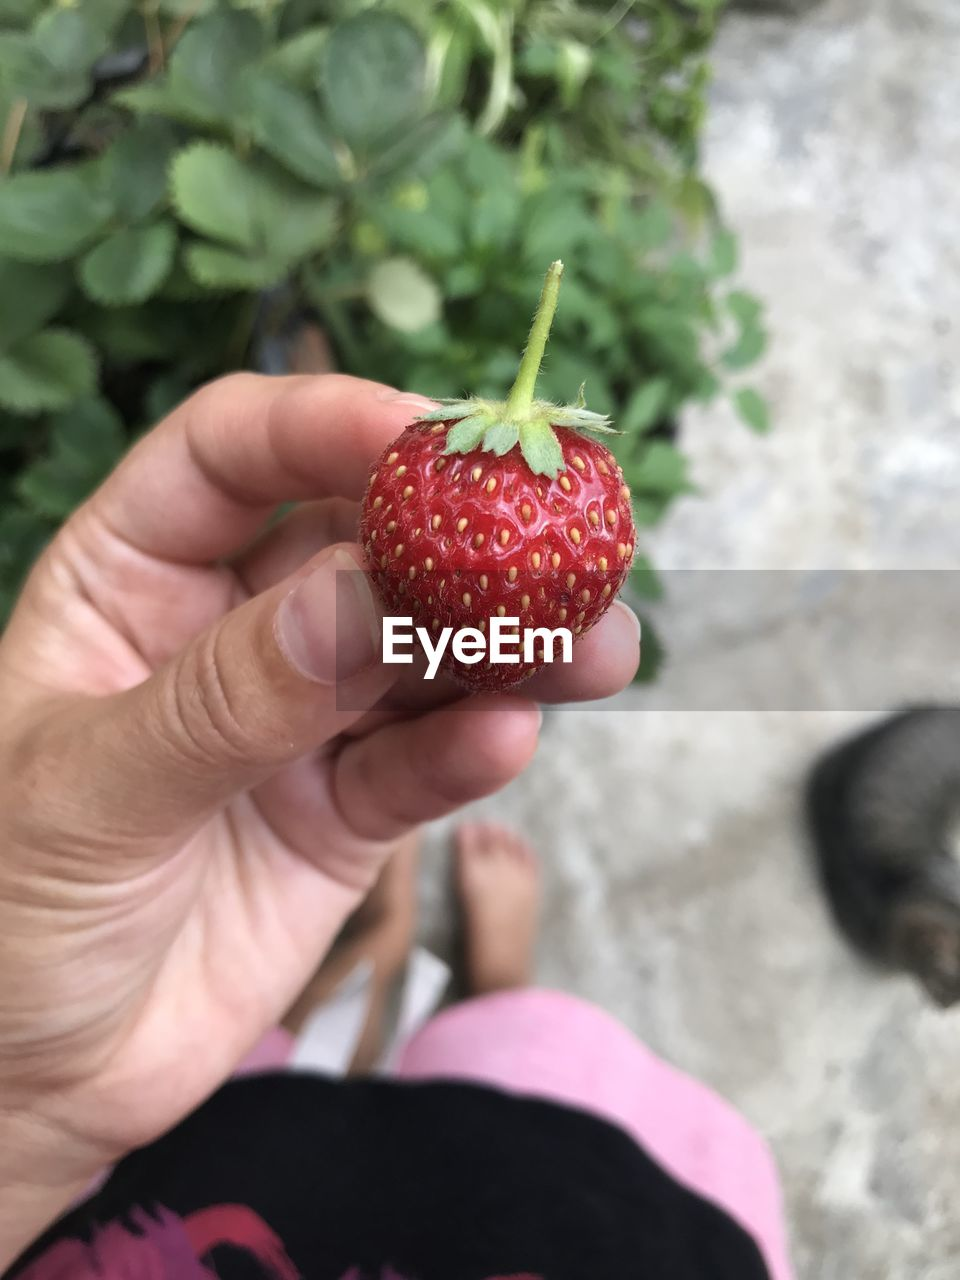 fruit, healthy eating, food and drink, human hand, food, hand, red, human body part, freshness, one person, wellbeing, strawberry, berry fruit, holding, focus on foreground, real people, body part, close-up, personal perspective, finger, ripe, temptation